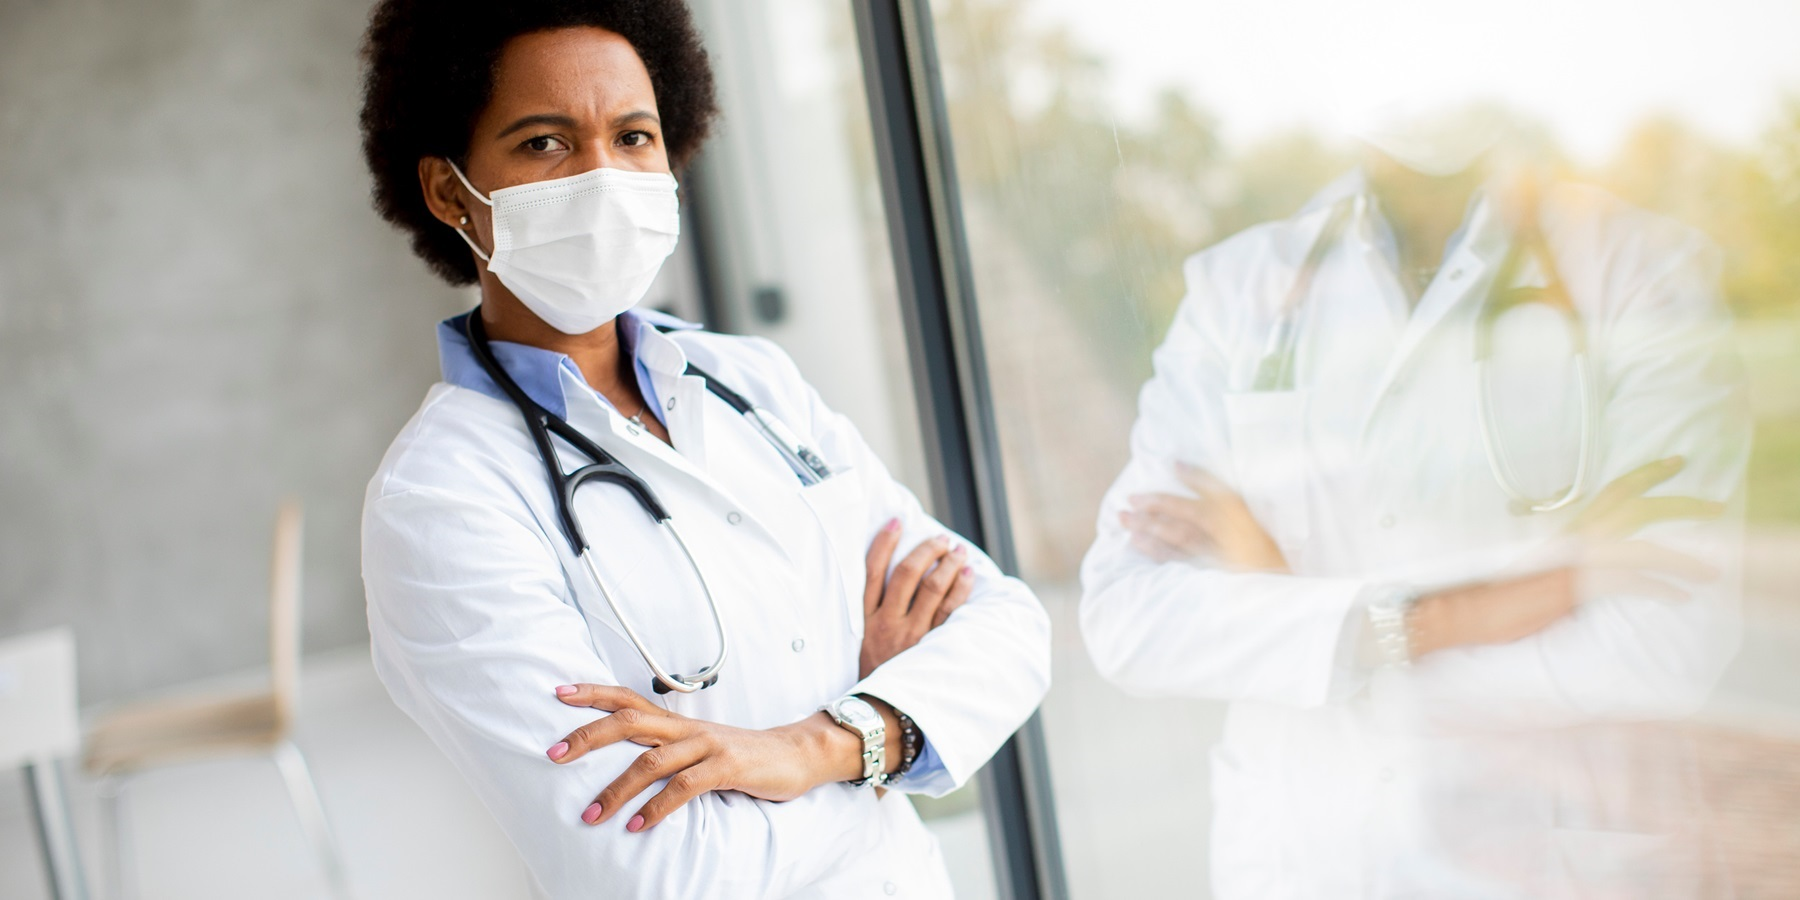 Screening Health Care Workers as an Early Warning for Pandemics